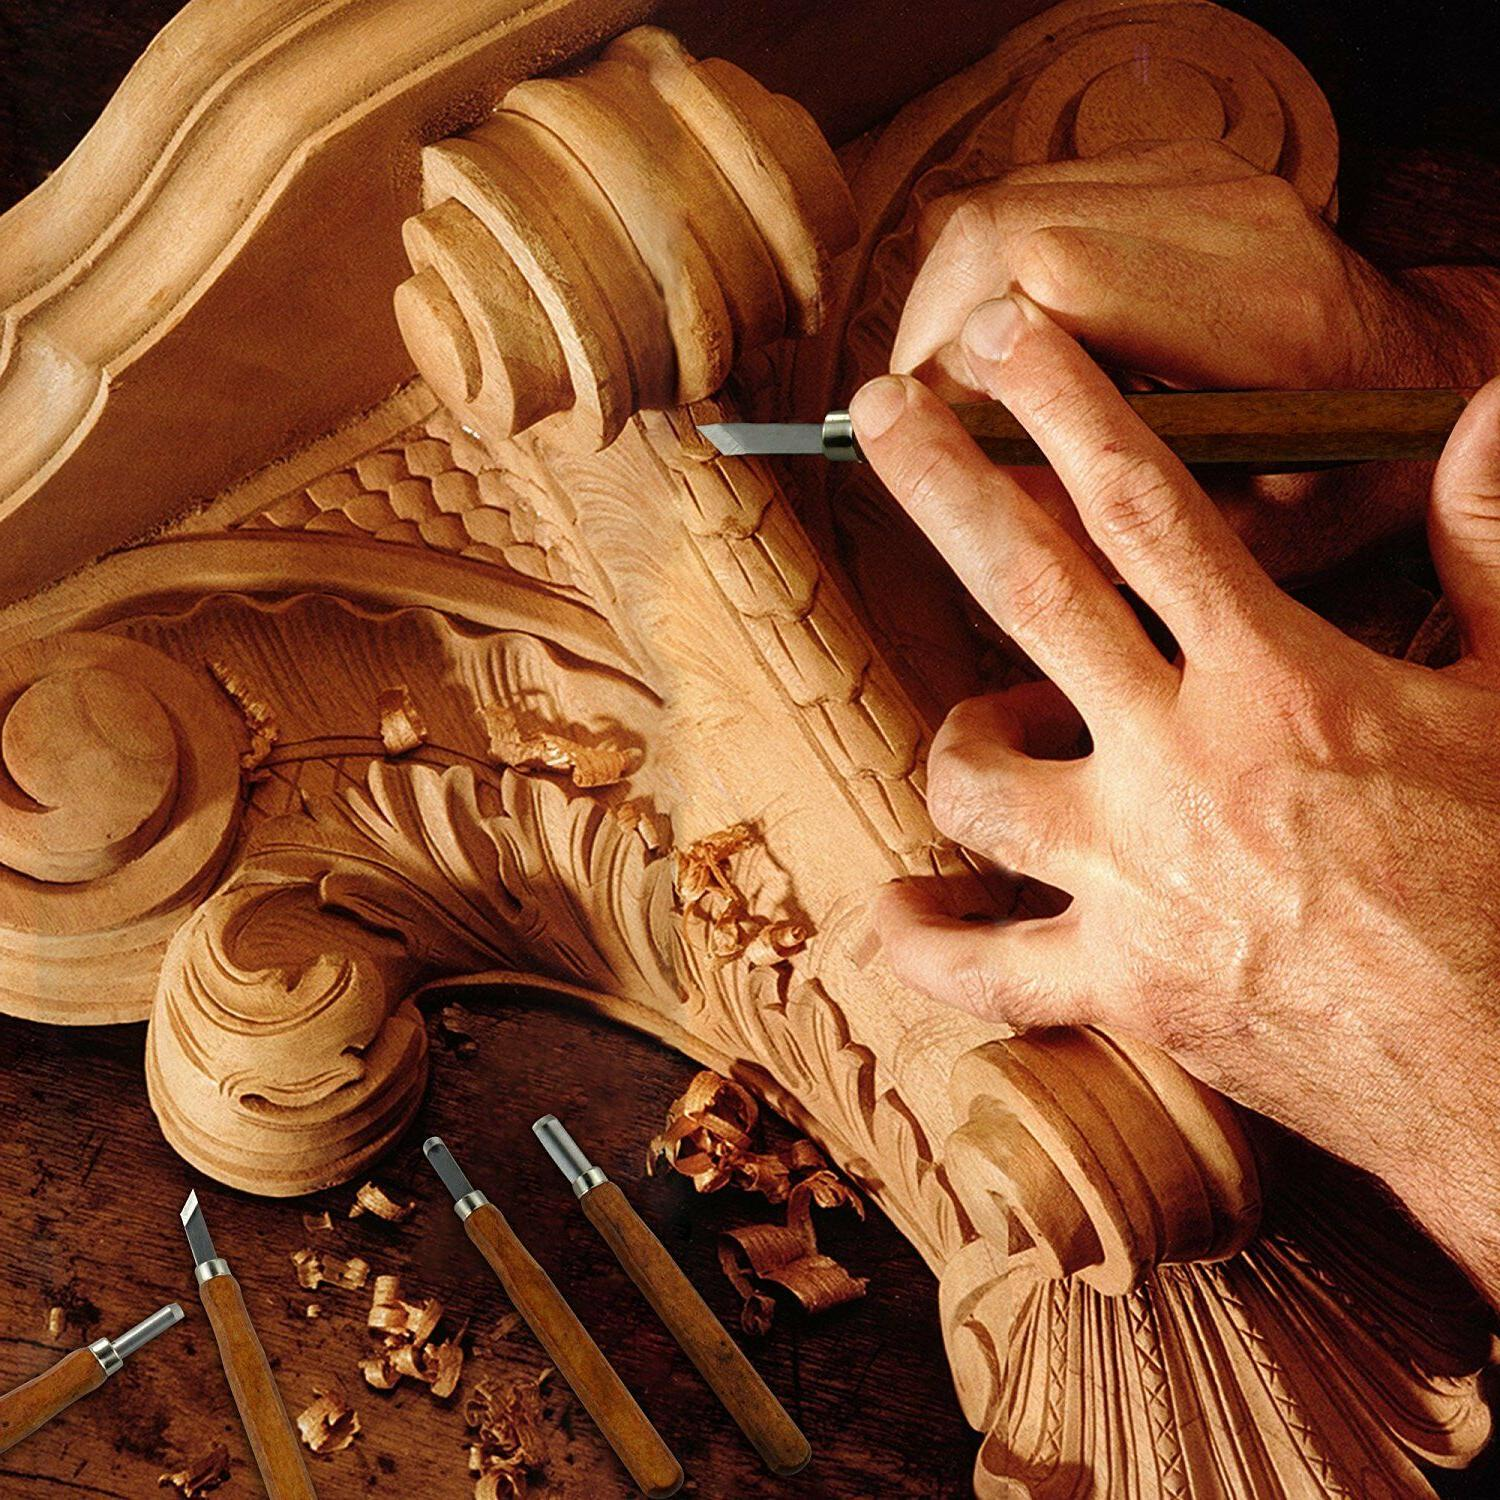 Wood Carving Piece Wood Carving Wood Tools